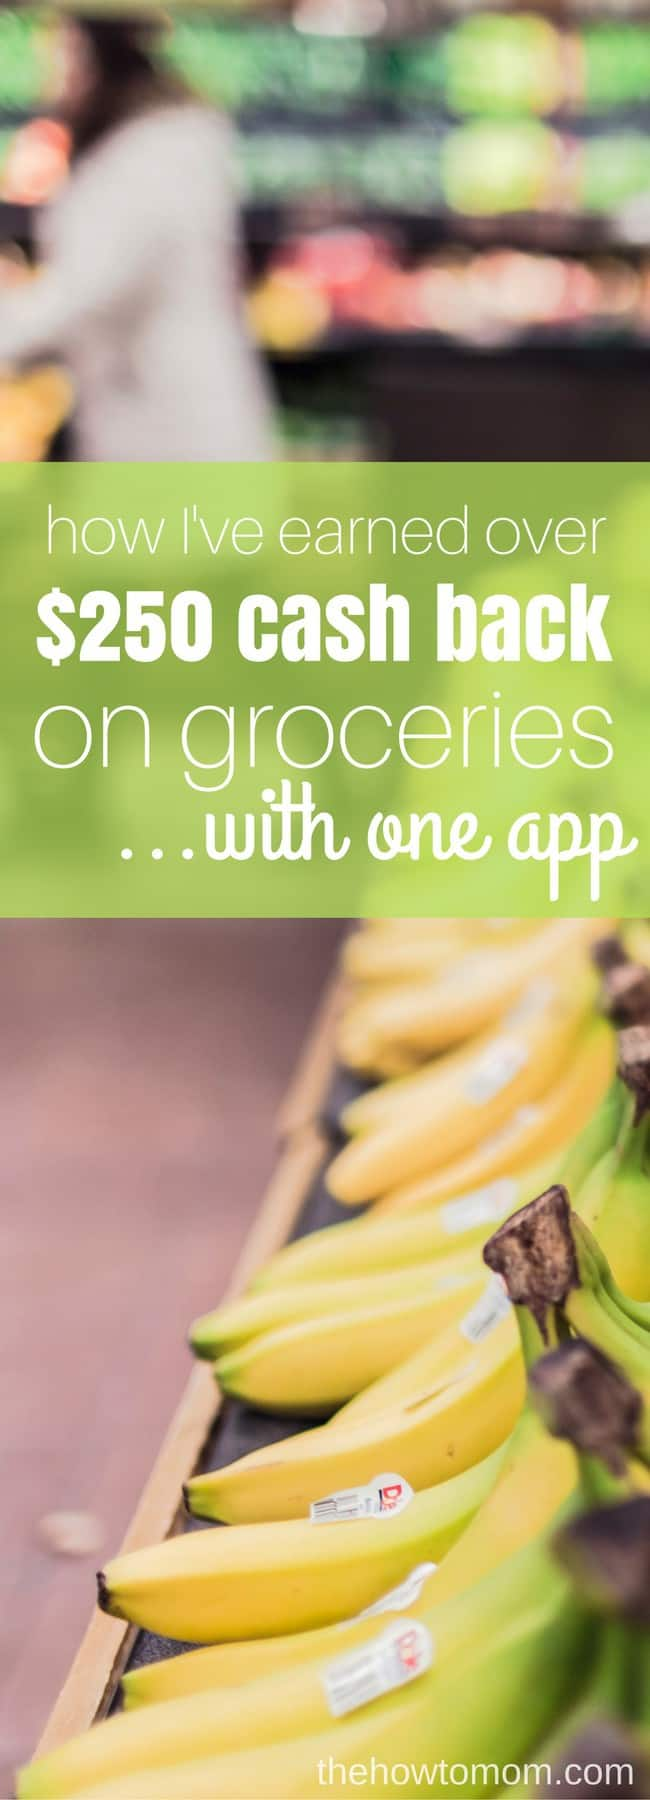 How to get cash back on groceries